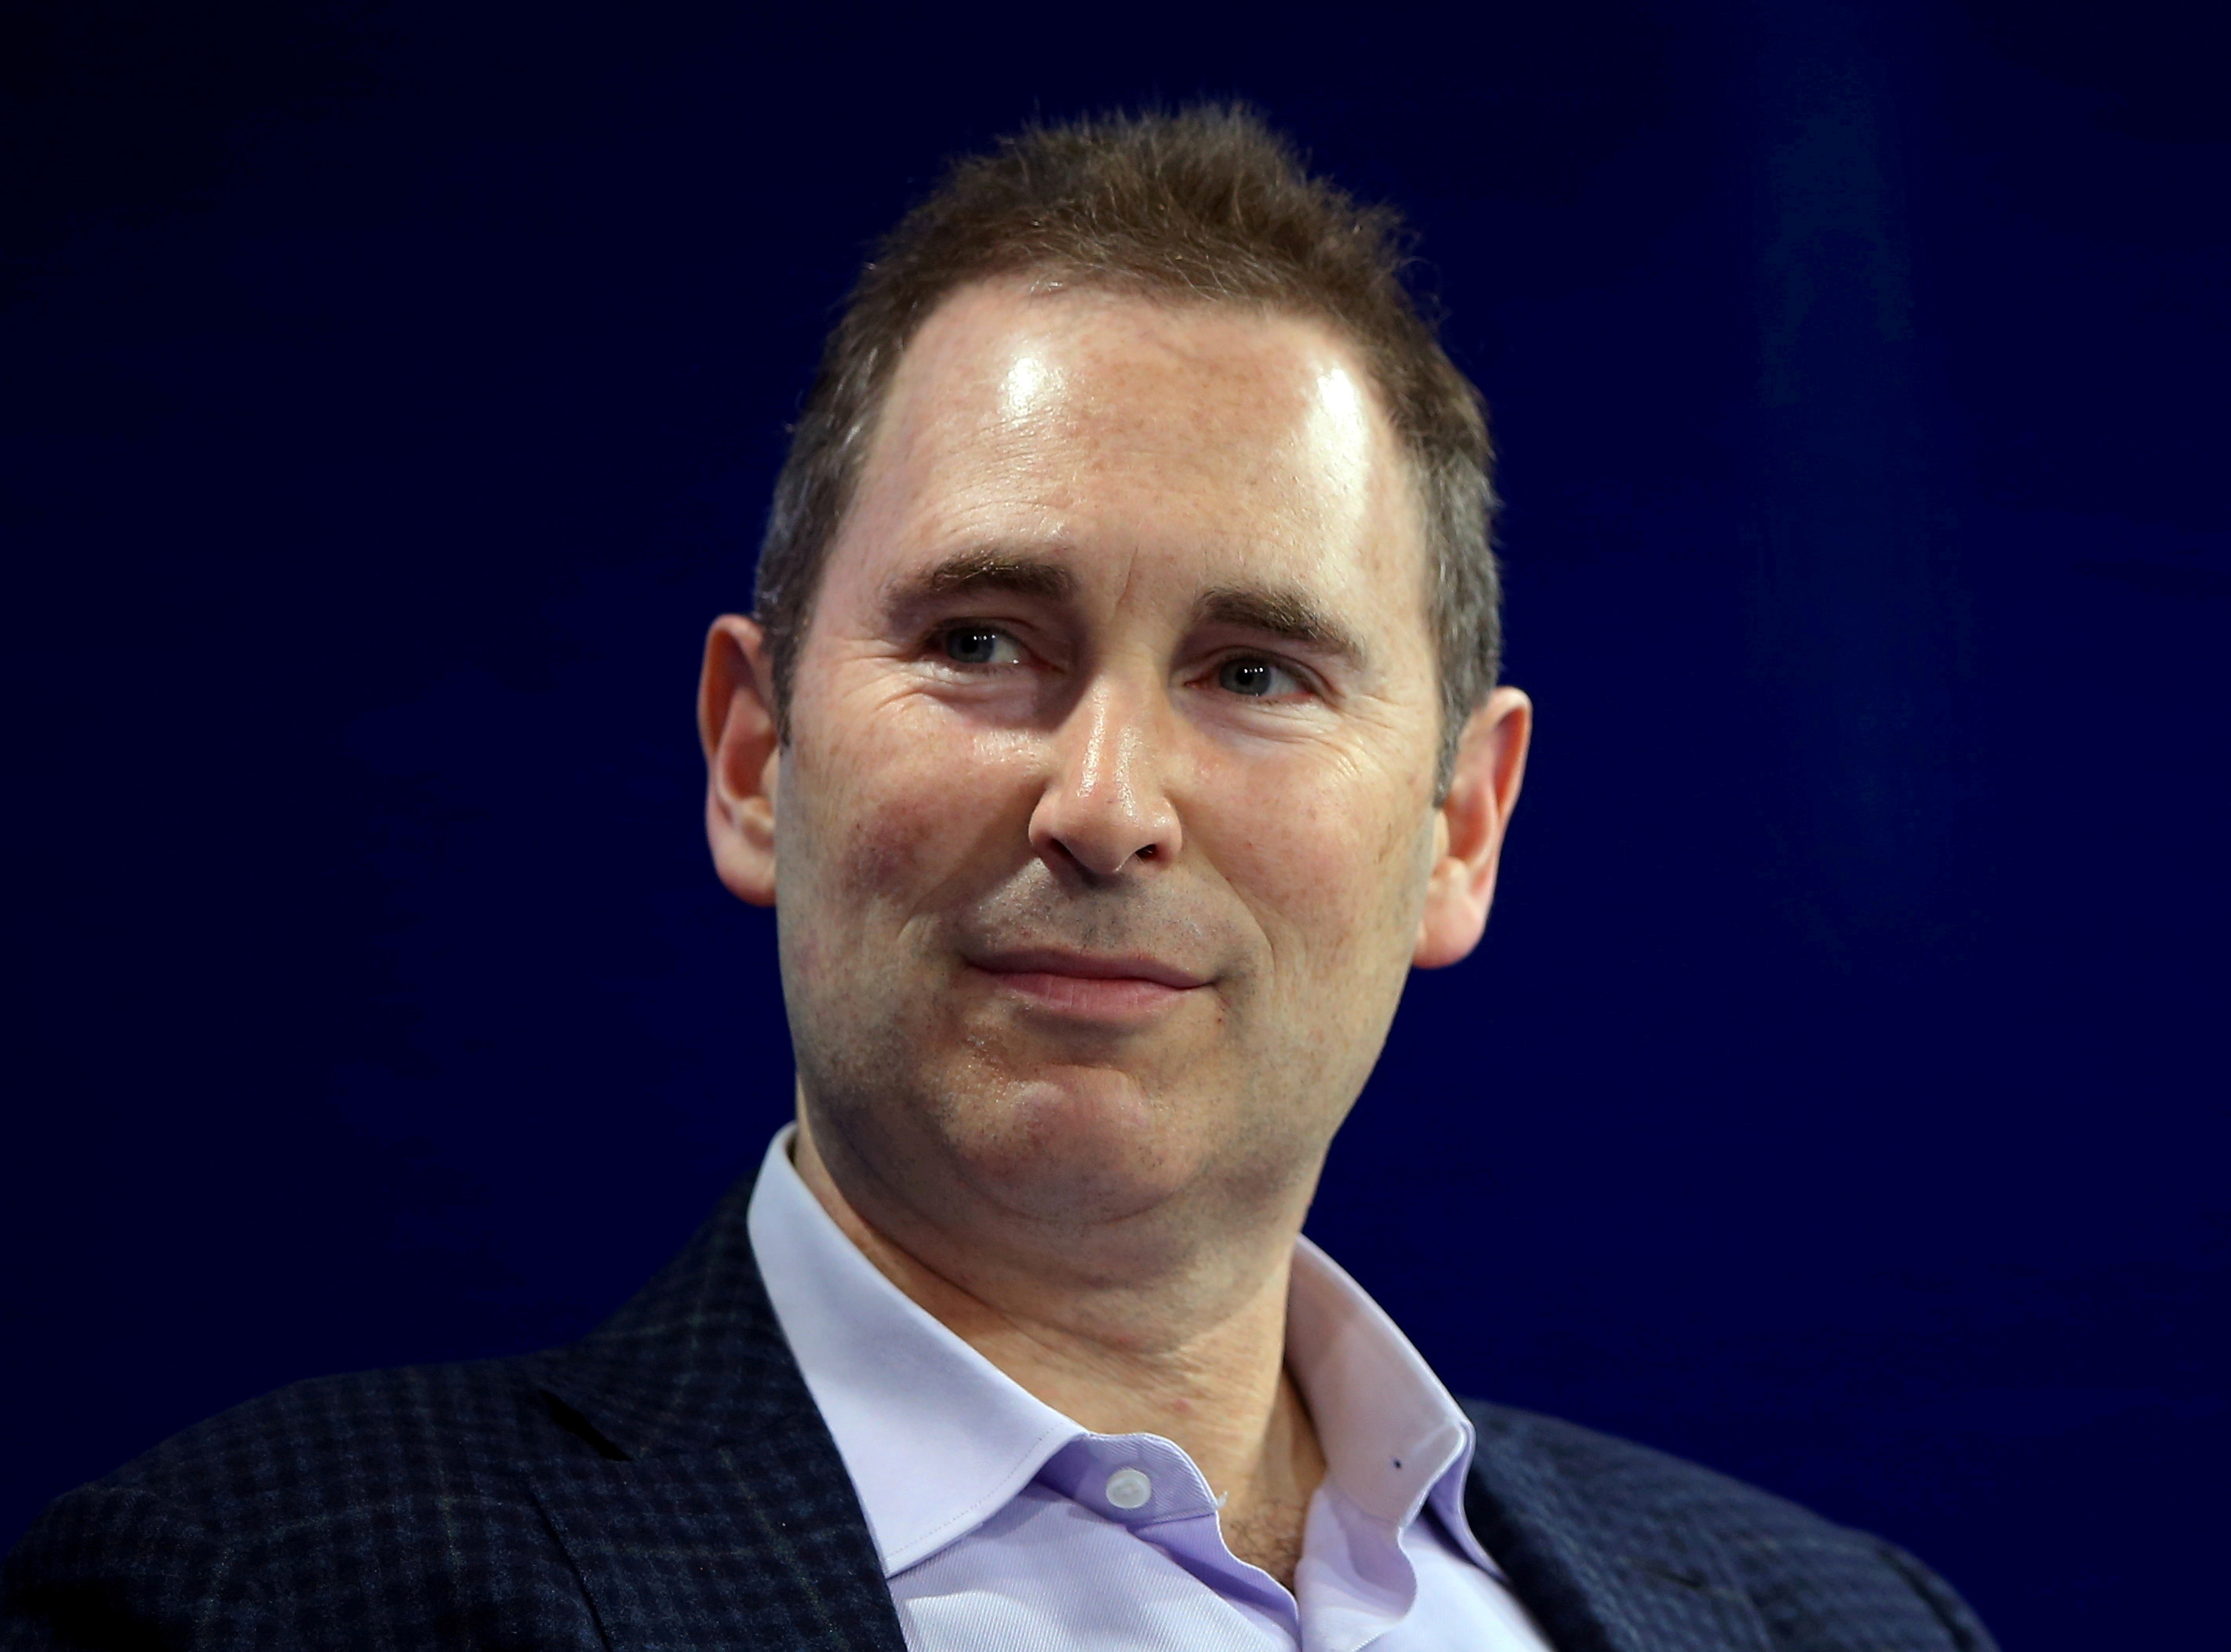 Amazon's Andy Jassy speaks at the WSJD Live conference in Laguna Beach, California, U.S., October 25, 2016.     REUTERS/Mike Blake/File Photo